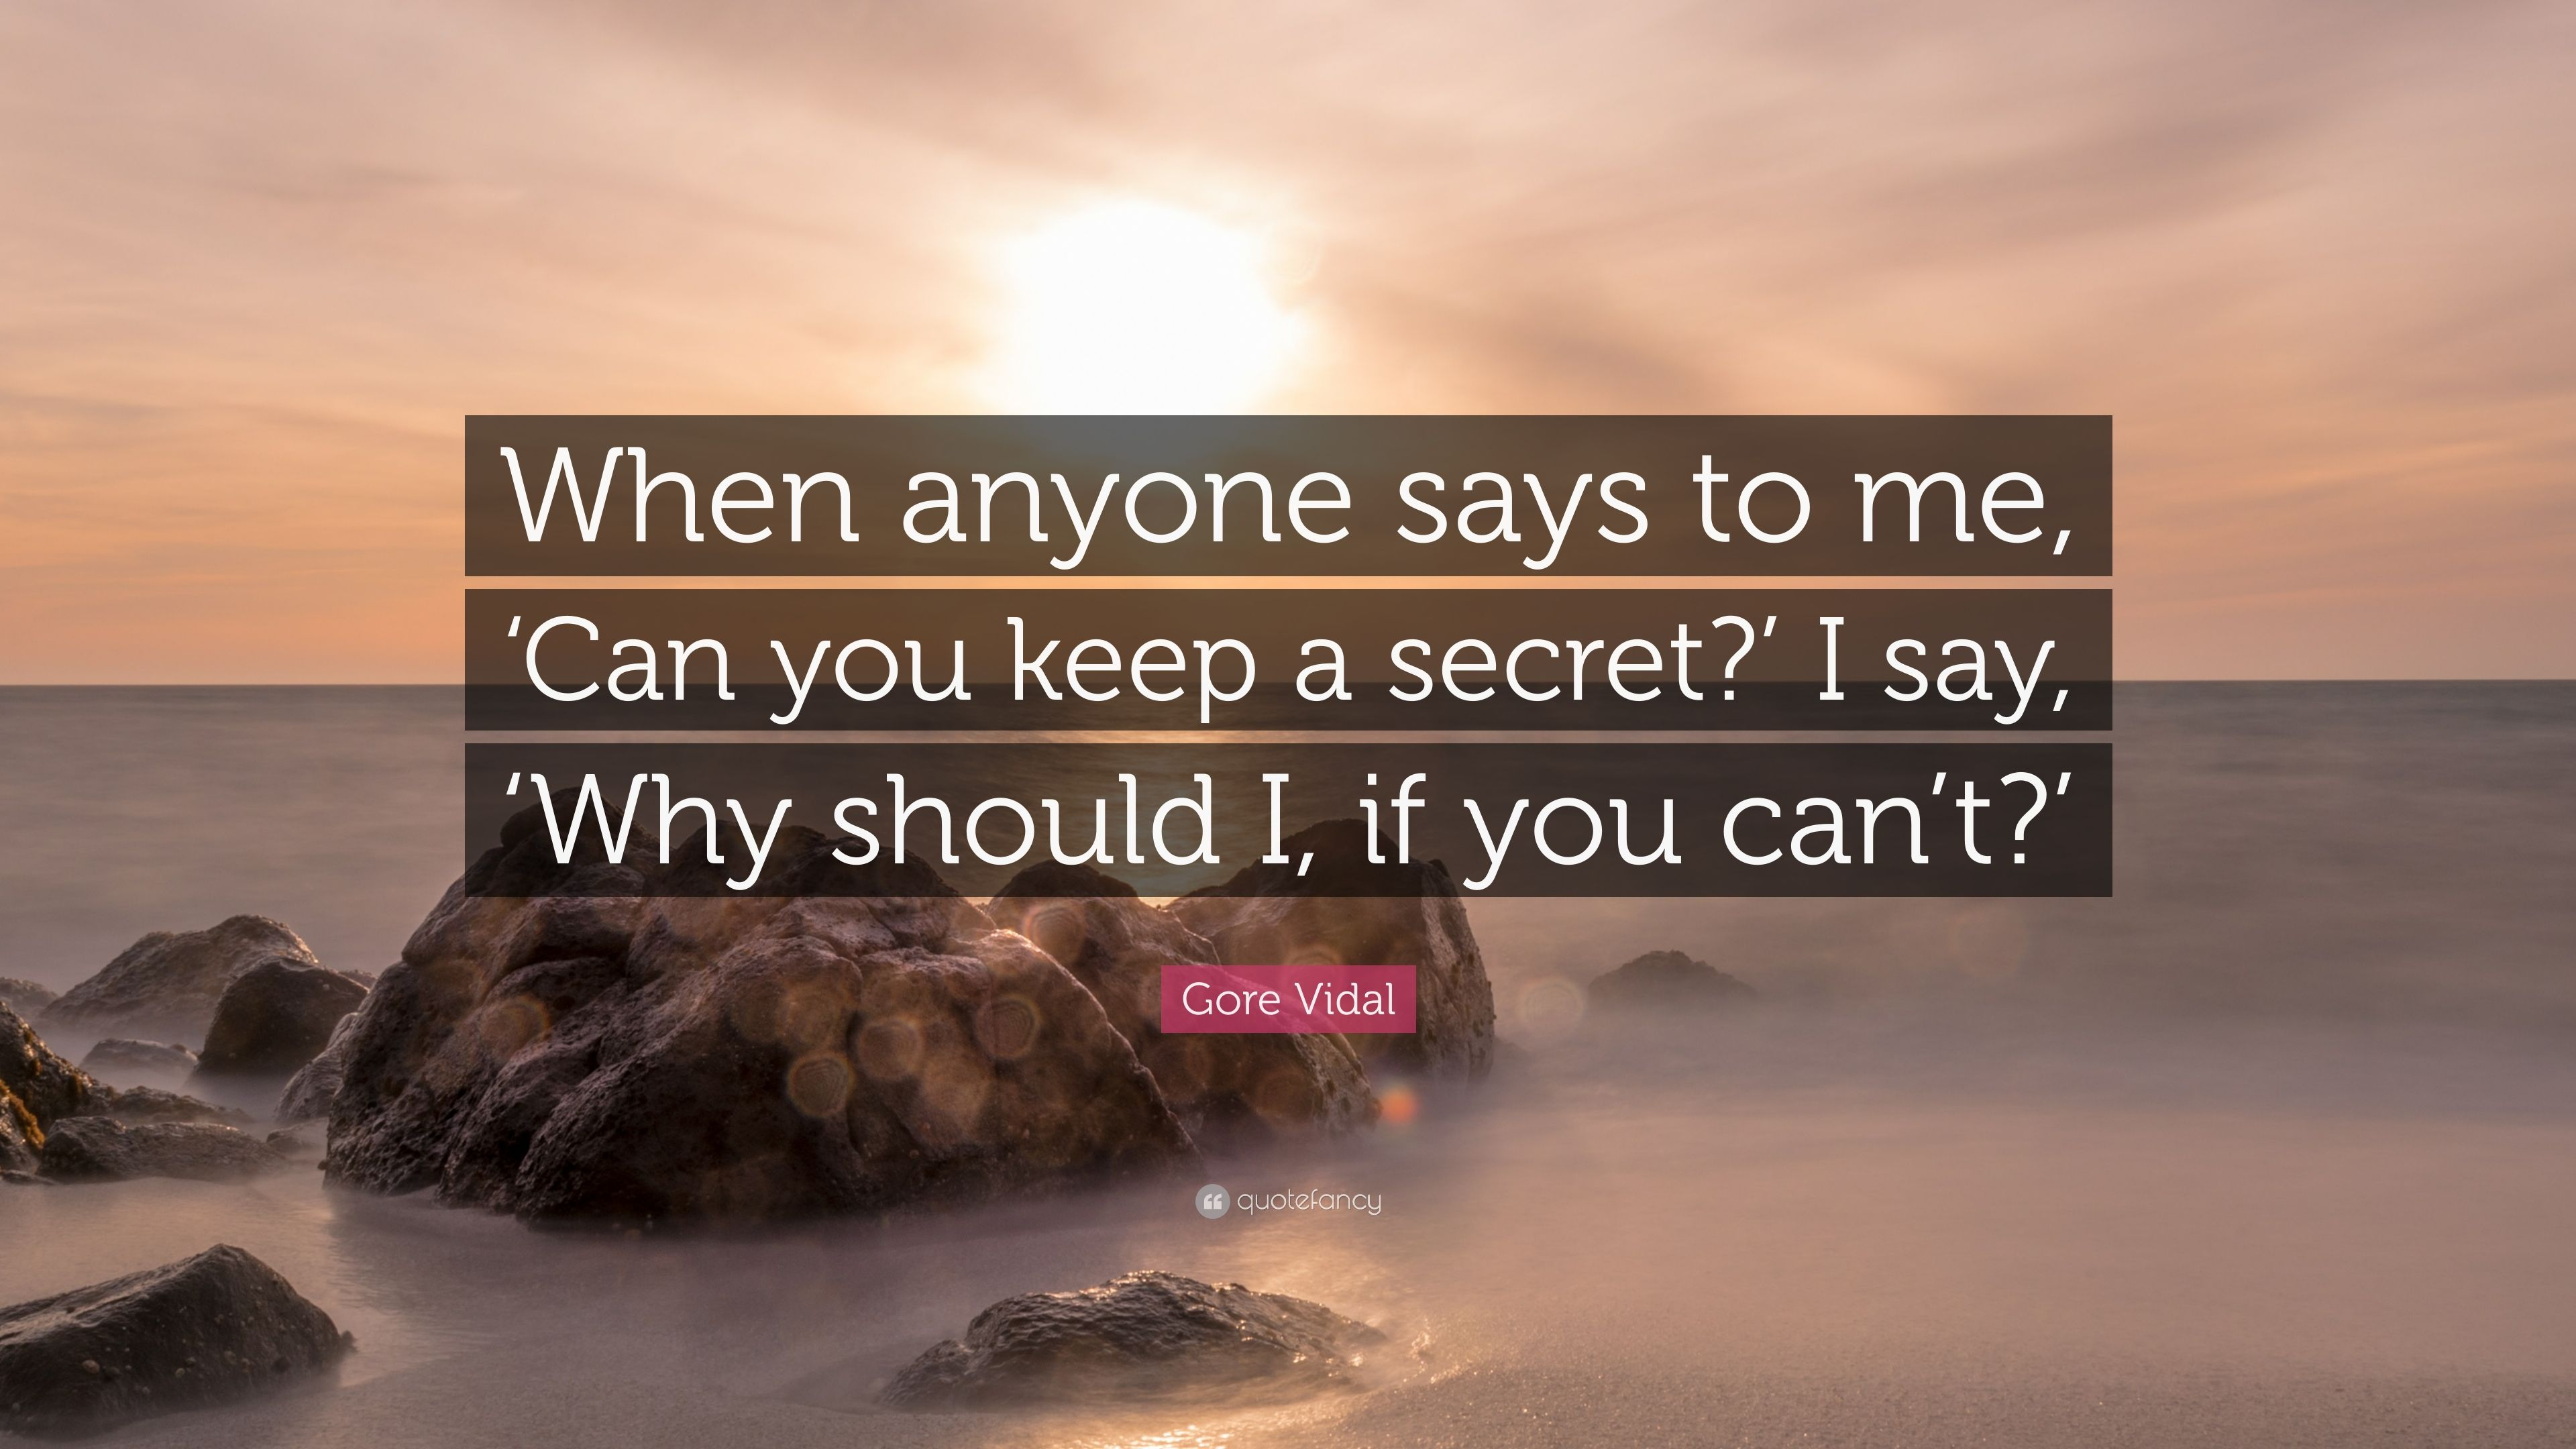 the secret? I keep ?Can/Should